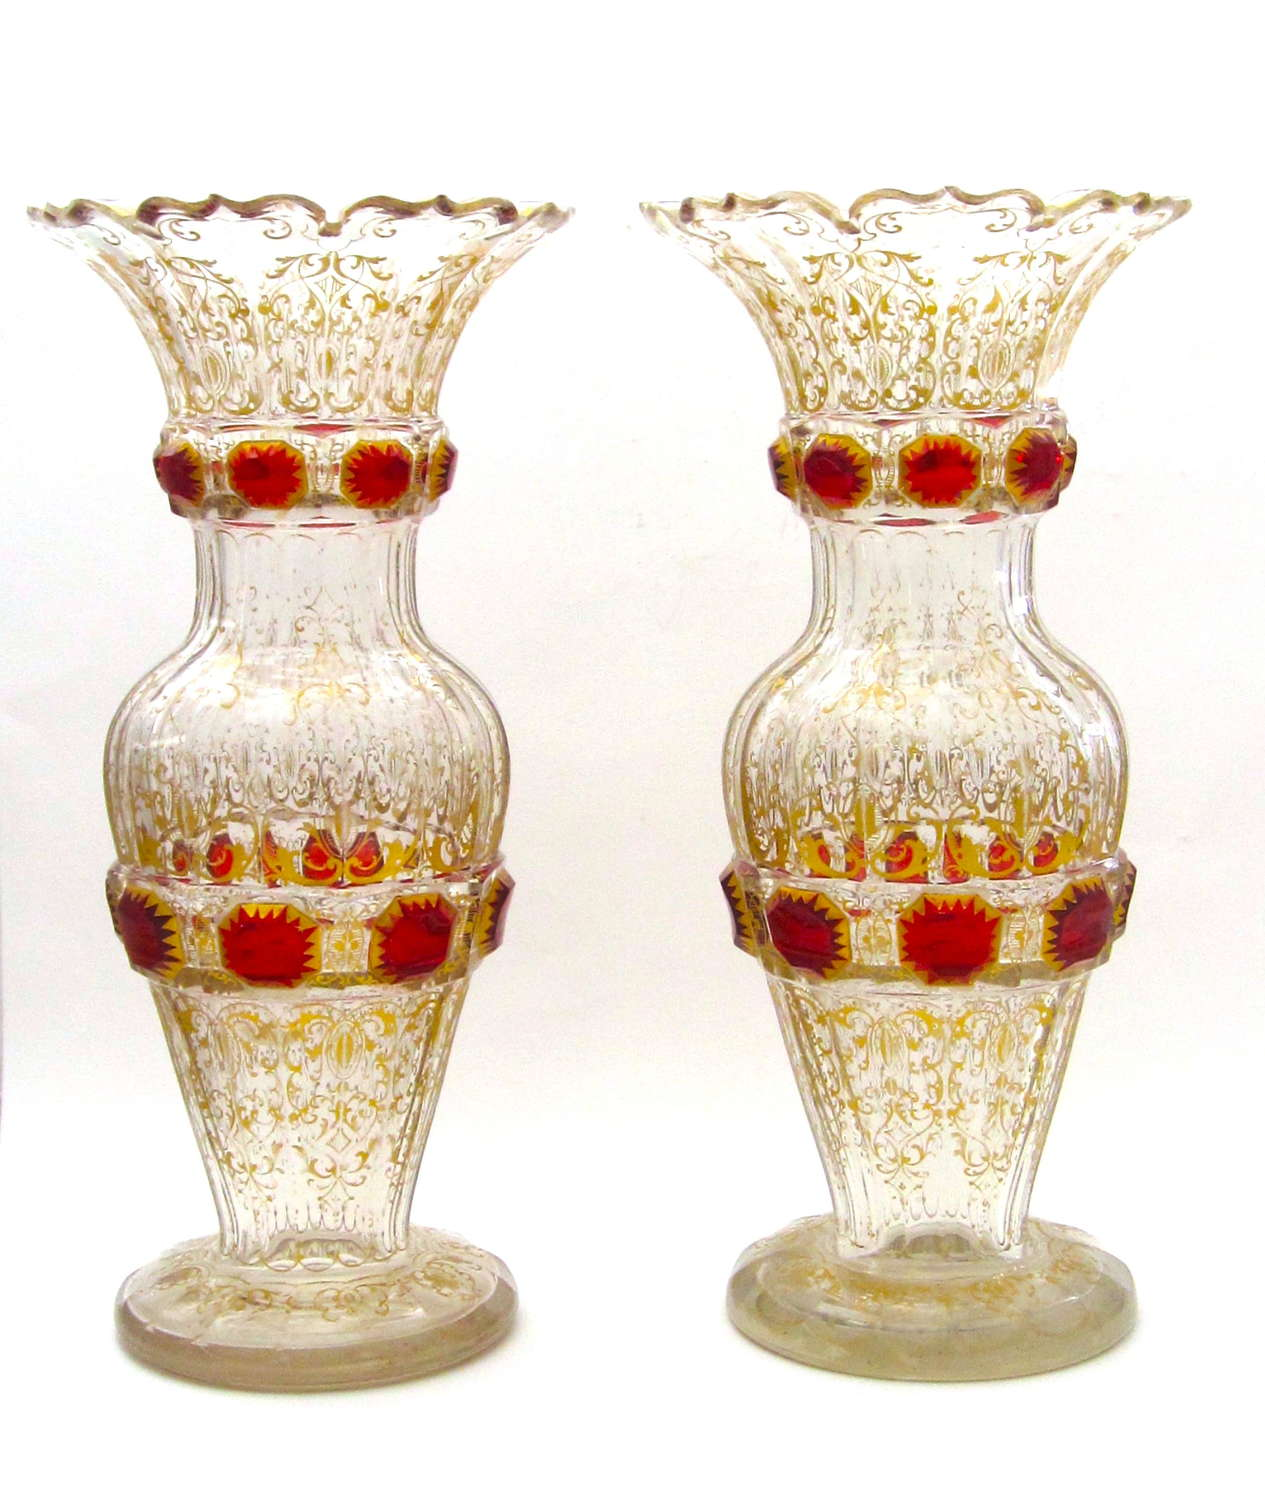 A Large Pair of Antique Bohemian Vases with Red Jewel Cabouchons